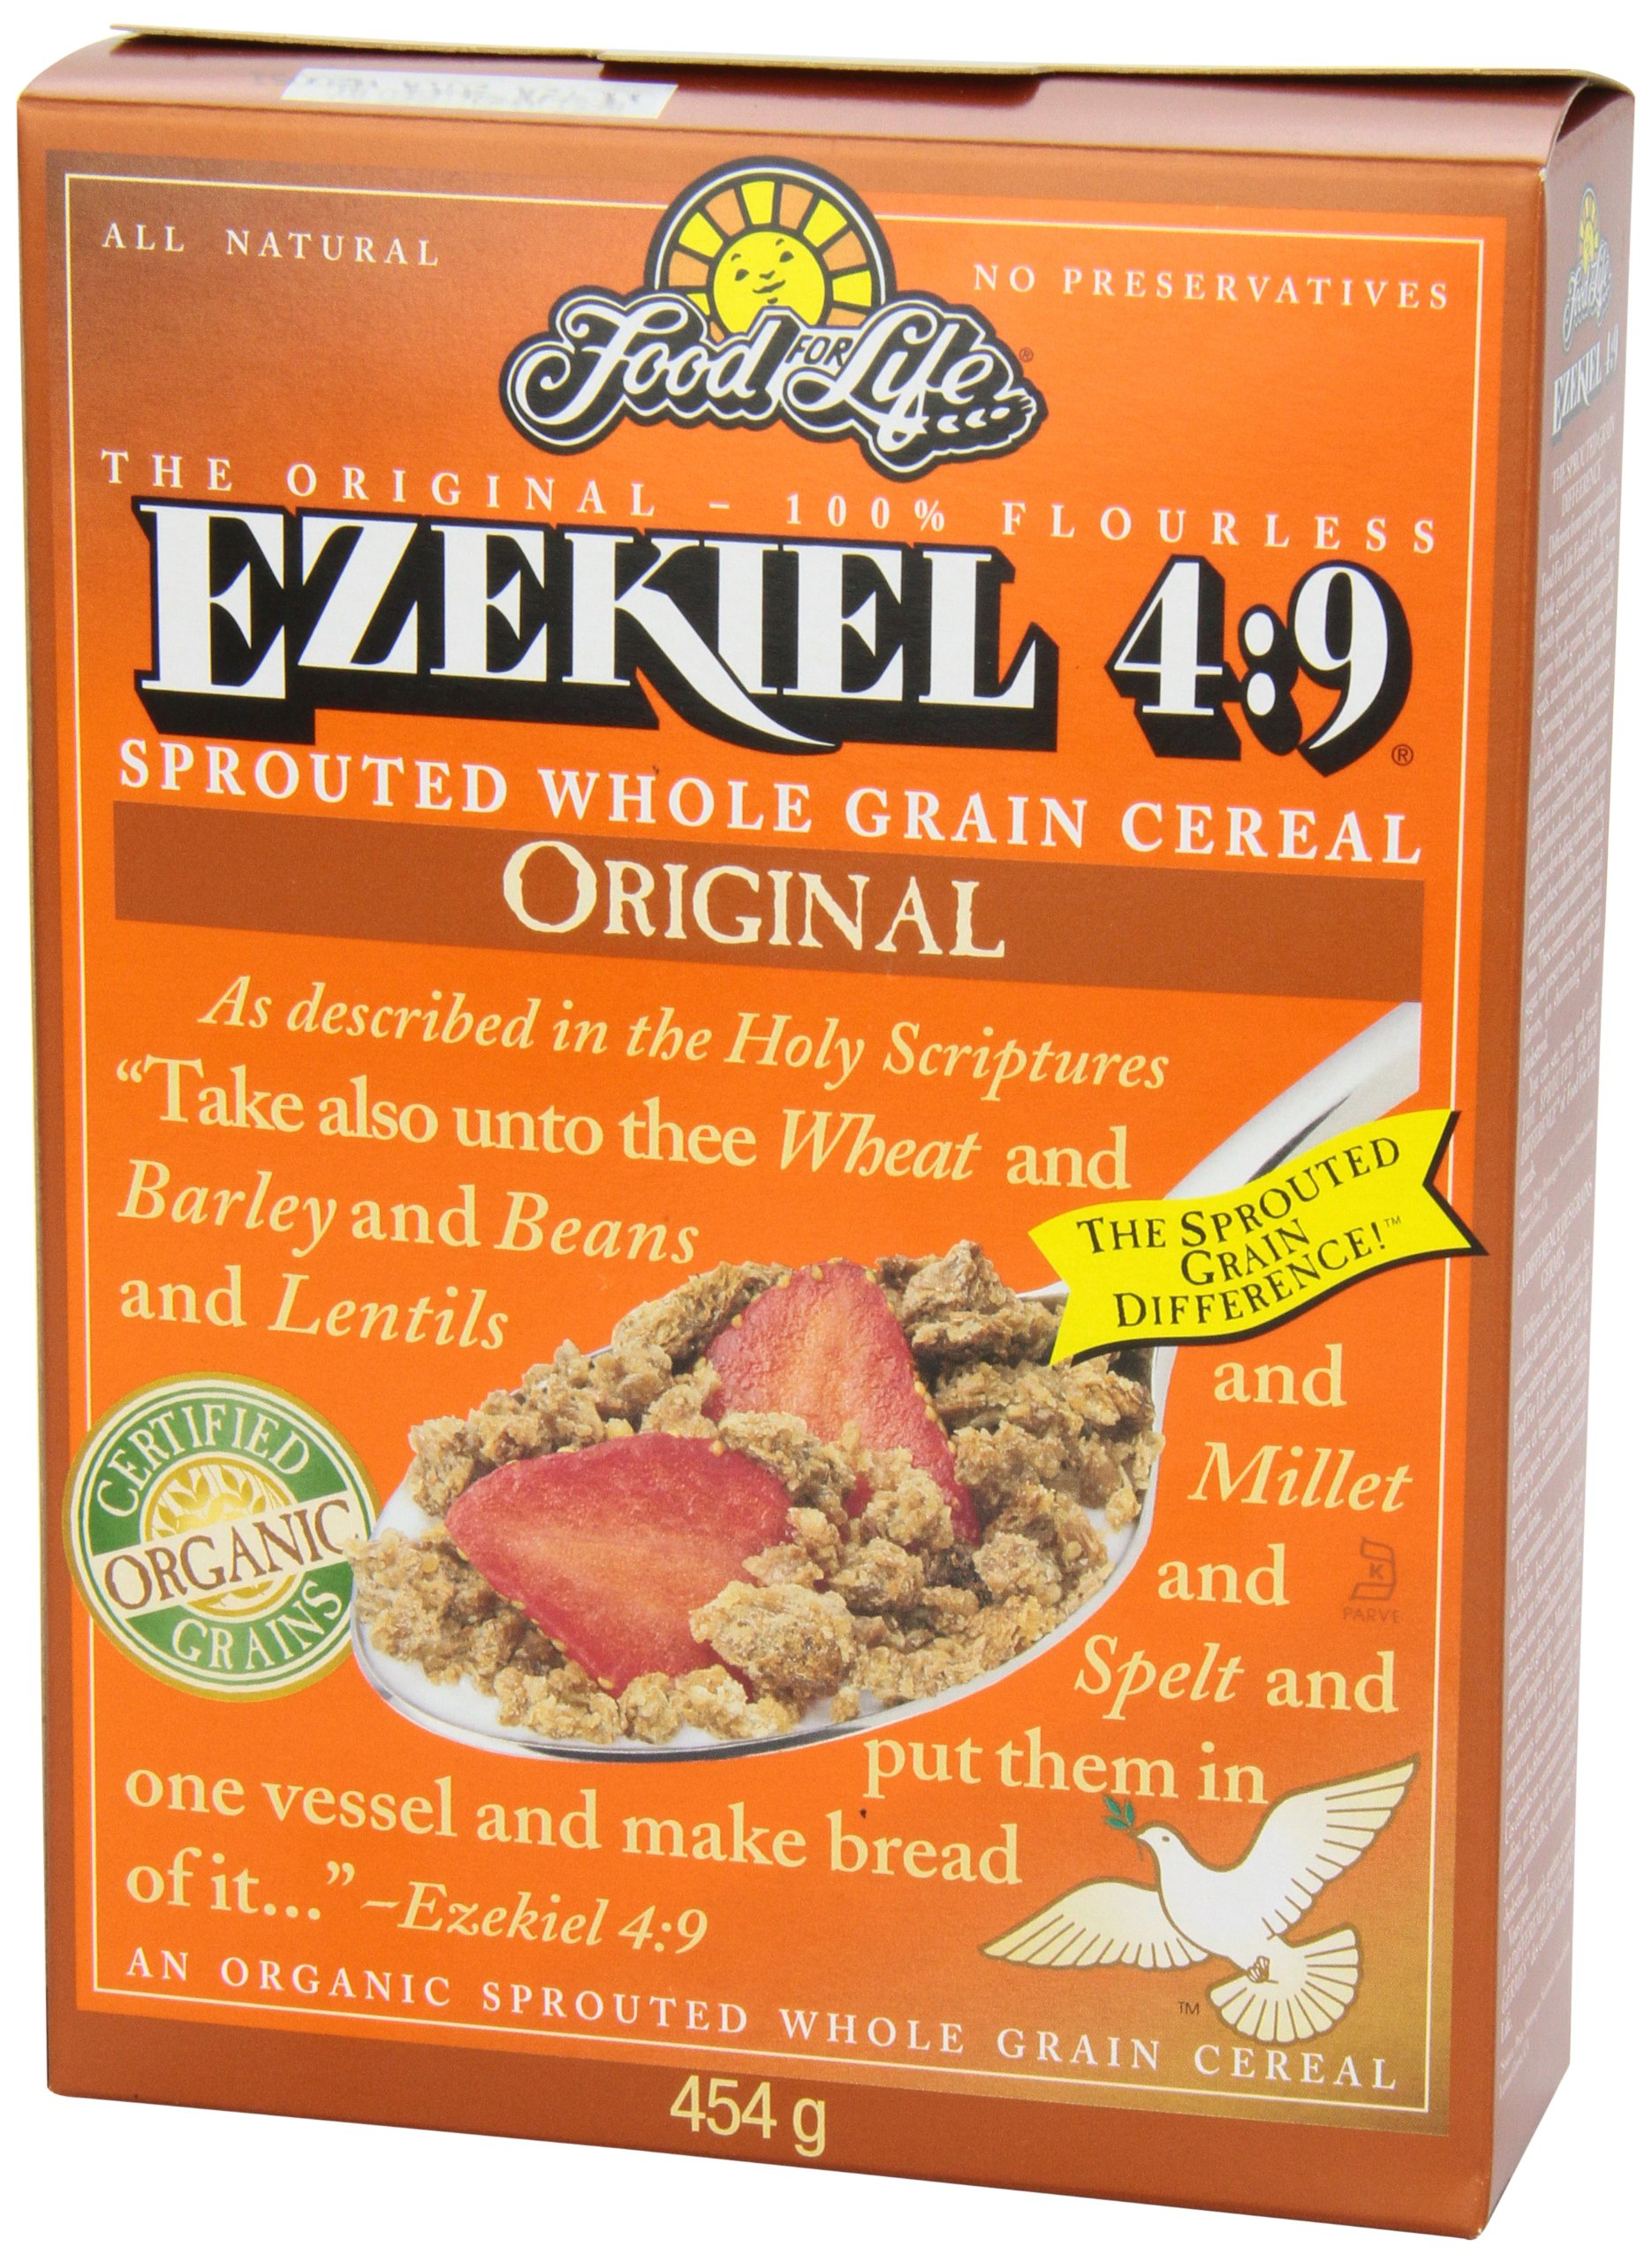 Food For Life Ezekiel 4:9 Organic Sprouted Whole Grain Cereal, Original, 16-Ounce Boxes (Pack of 6) by Food for Life (Image #7)